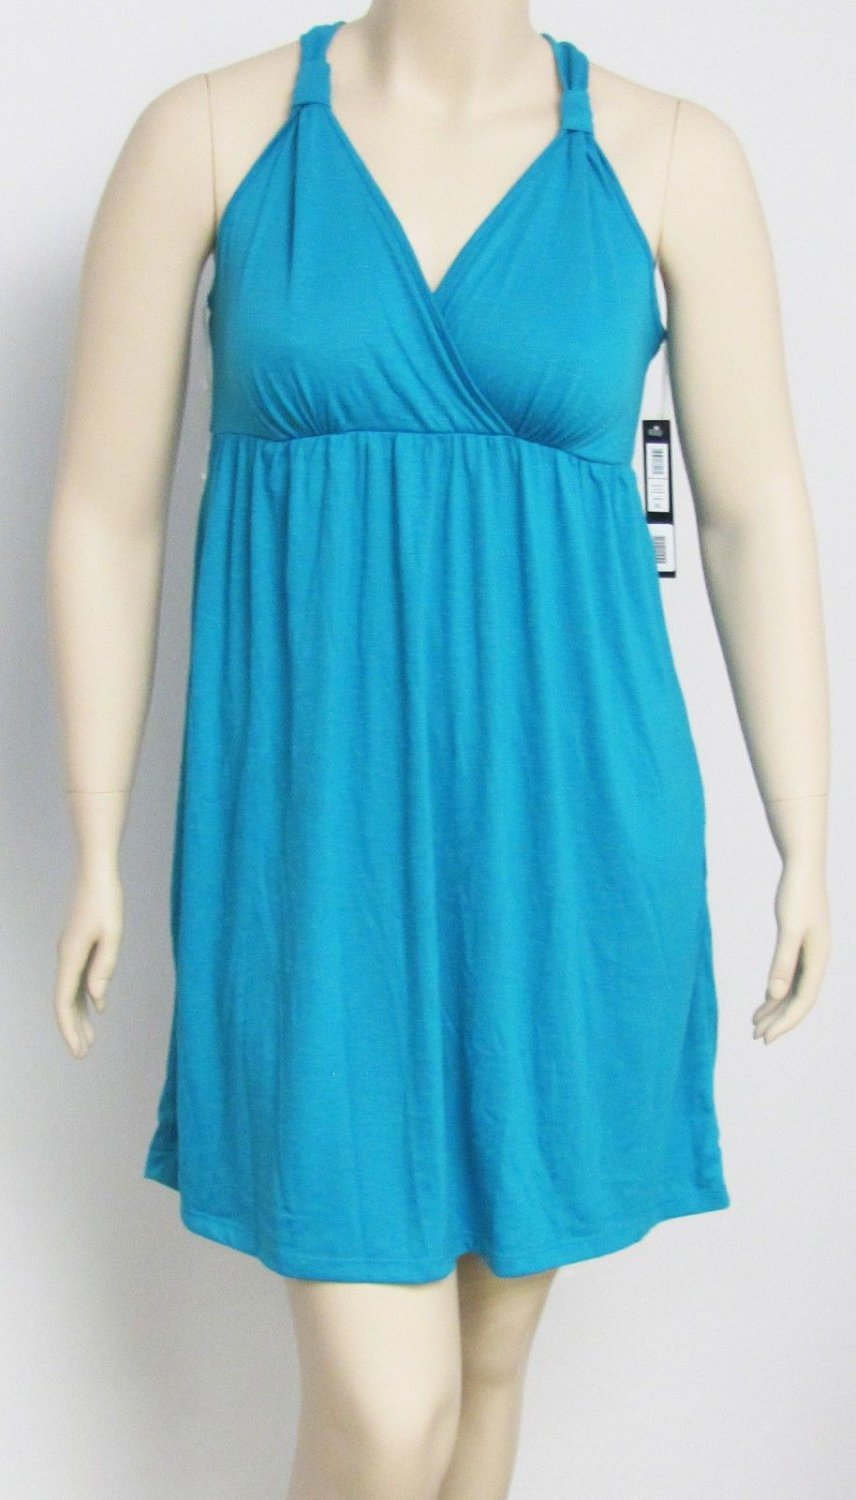 Nicole Miller New York Womens XL solid Turquoise Blue Sun Dress or Swim Cover-Up